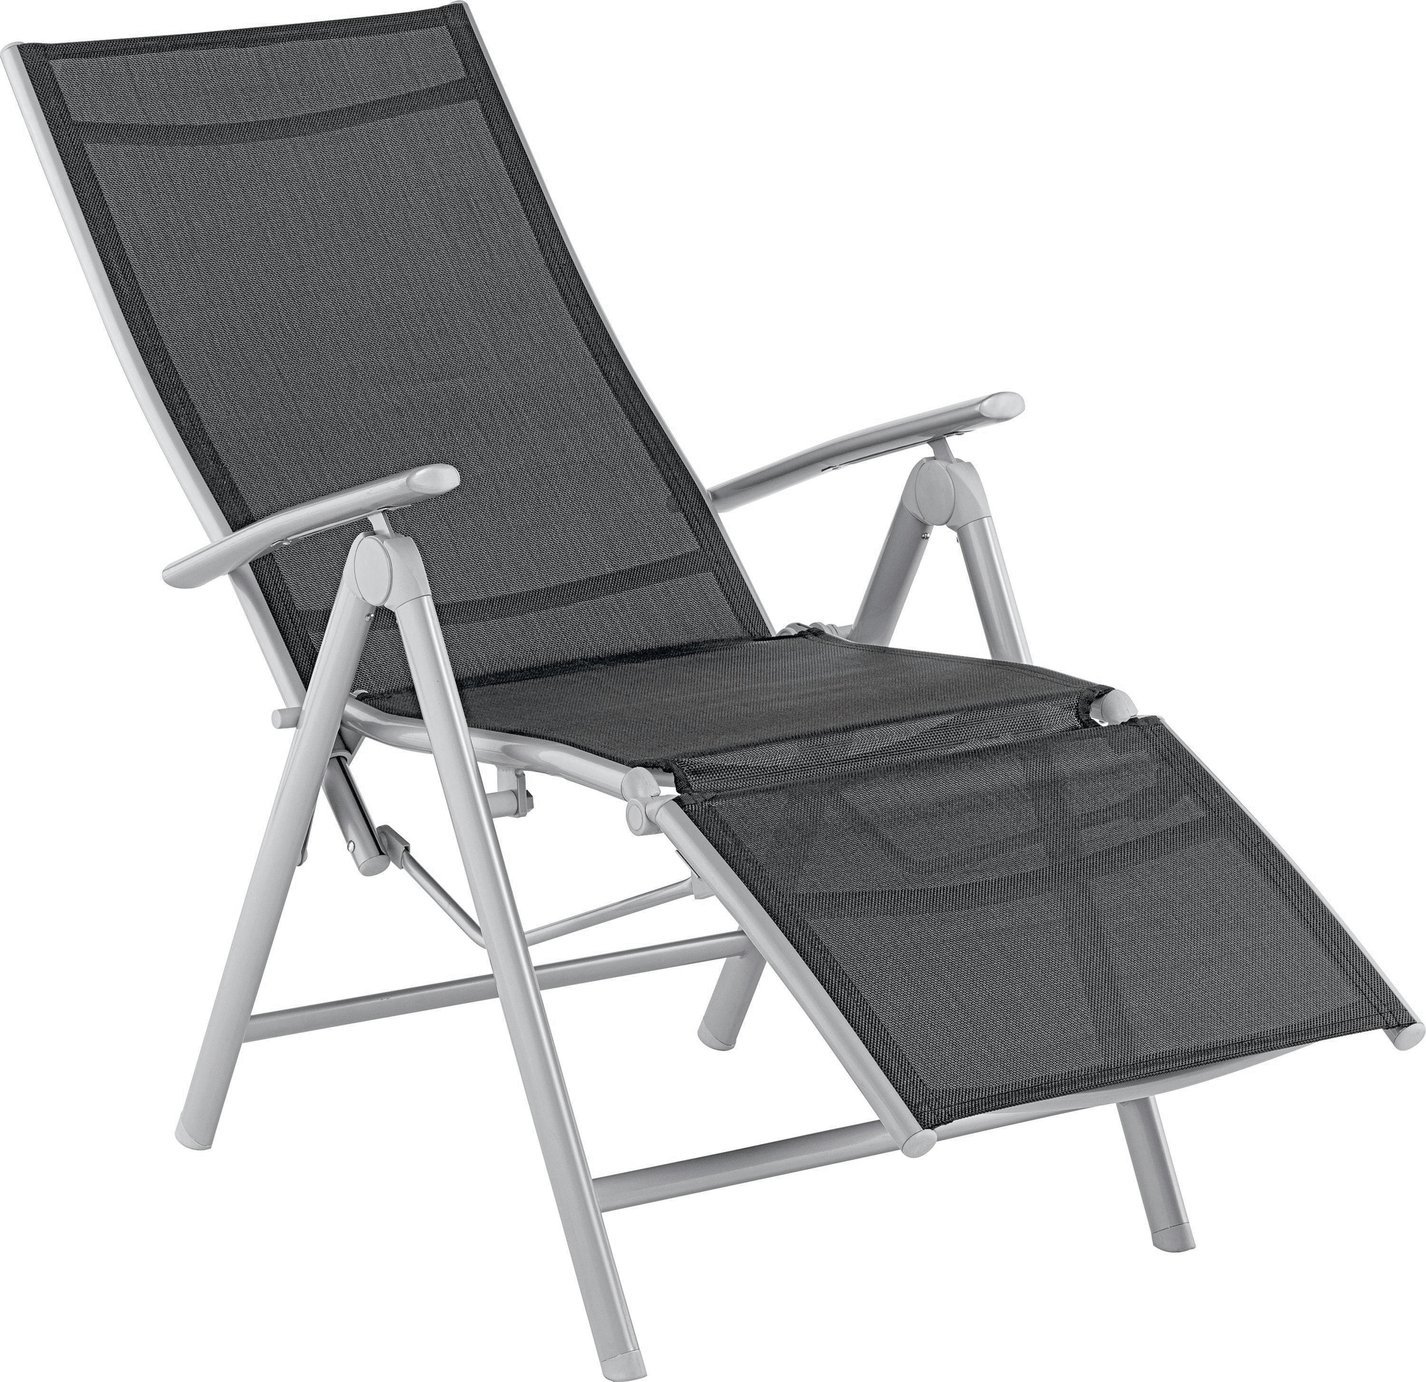 Buy Malibu Recliner Chair - Black at Argos.co.uk - Your Online Shop for Garden chairs and sun loungers Garden furniture Home and garden.  sc 1 st  Argos & Buy Malibu Recliner Chair - Black at Argos.co.uk - Your Online ... islam-shia.org